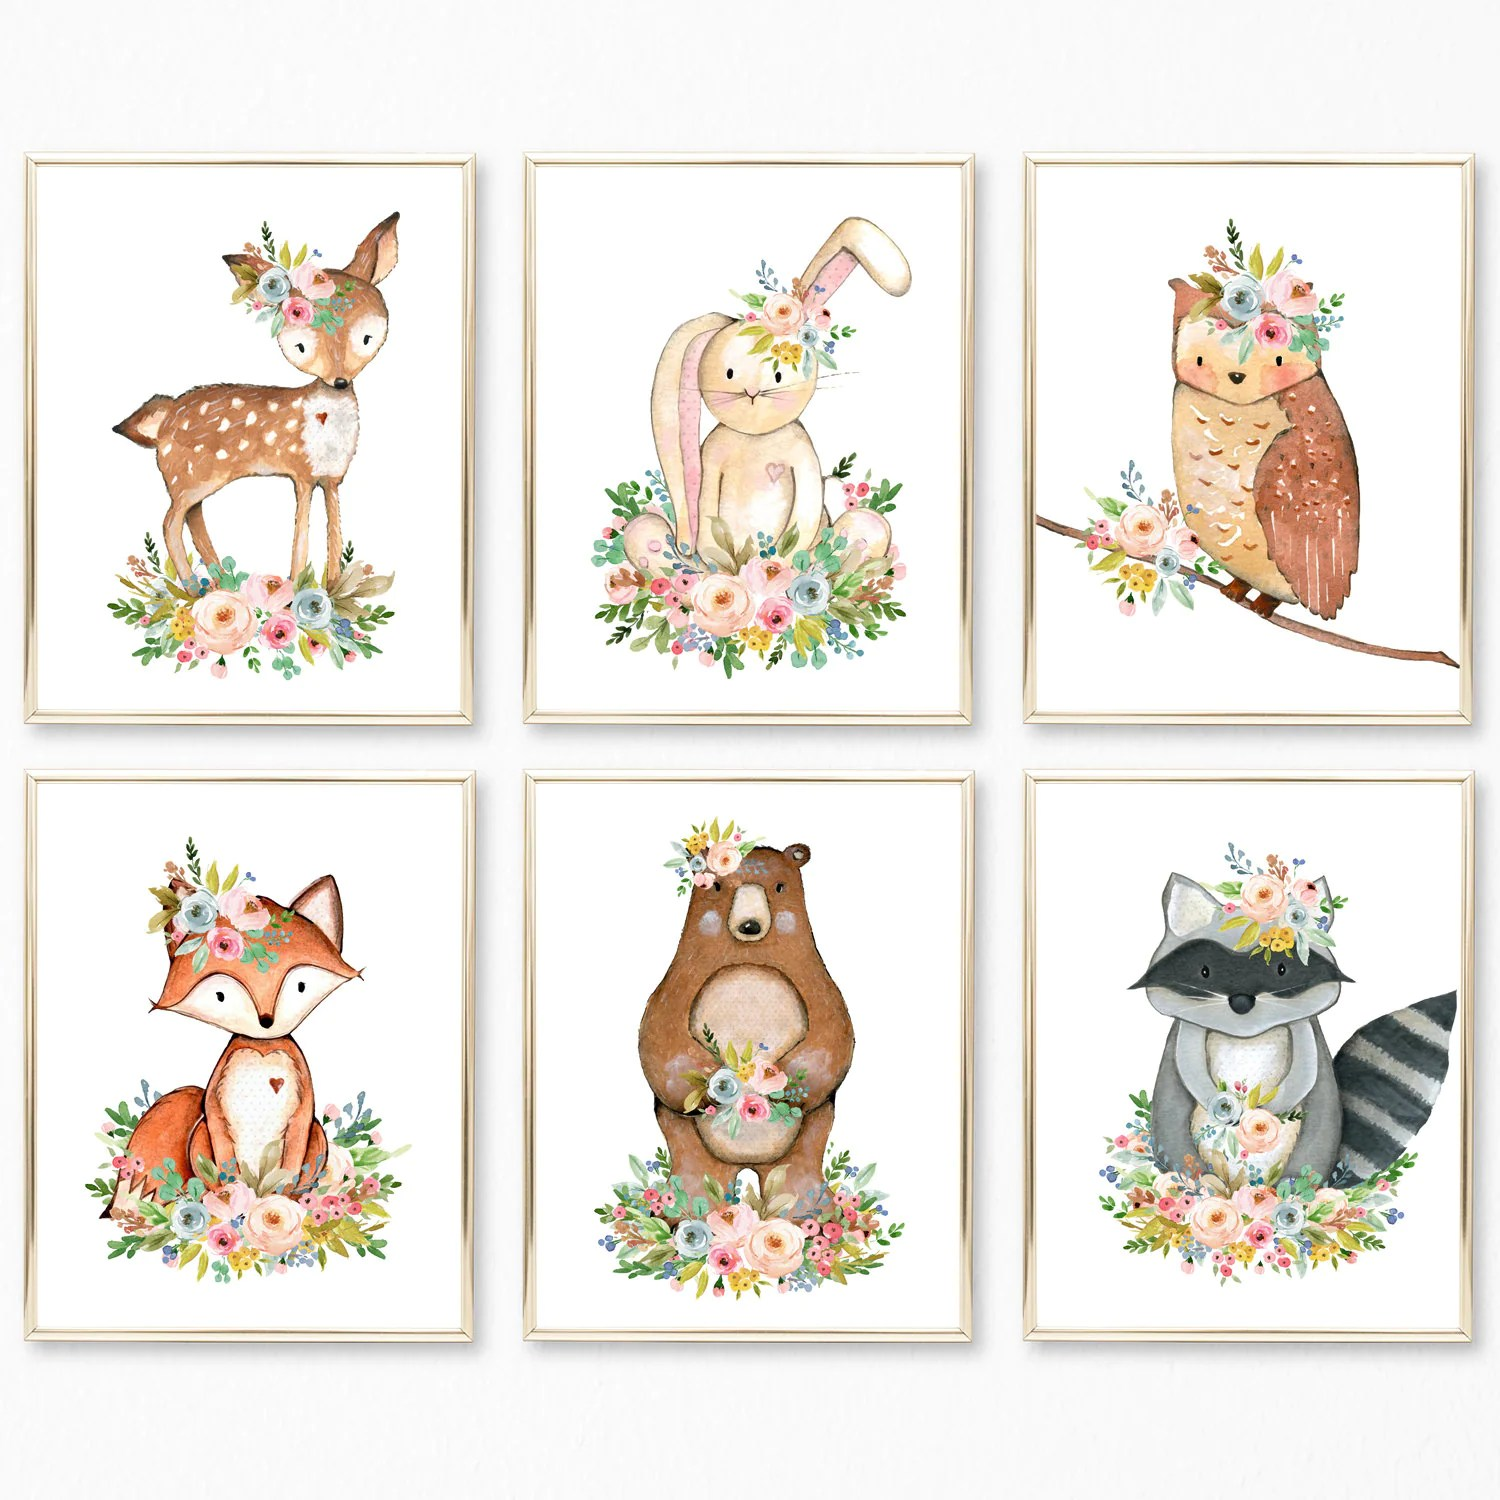 Nursery Prints Girl Set Of 6 Woodland Nursery Prints Nursery Decor Girl Woodland Nursery Woodland Nursery Decor Girl Watercolor Animal Prints Nursery Art